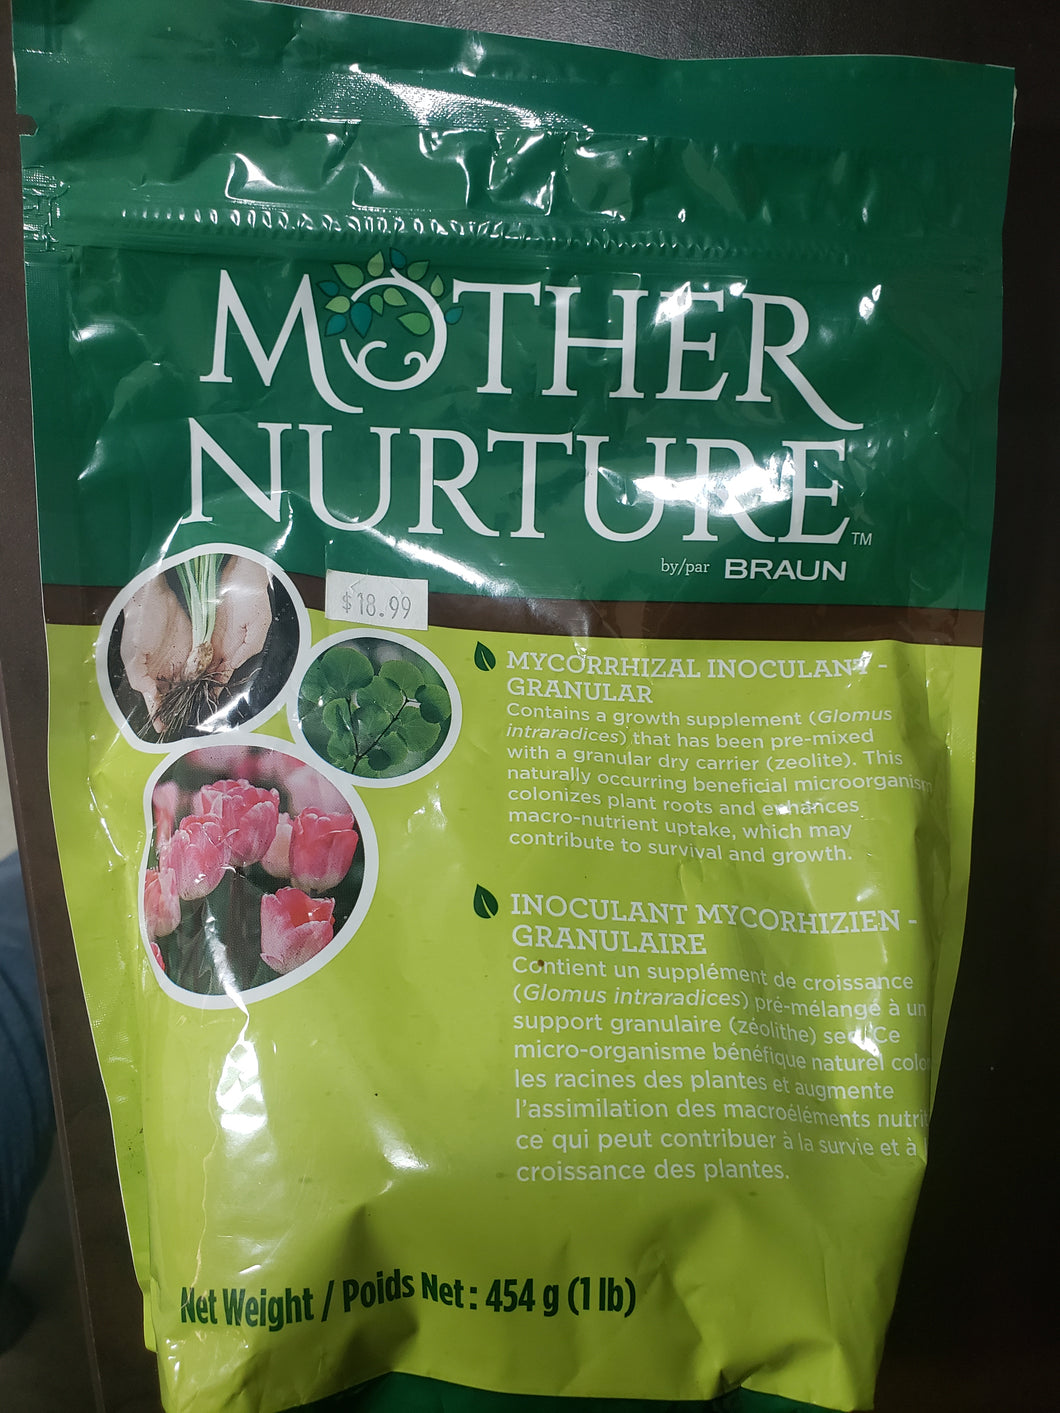 Mother Nurture Mycorrhizal Inoculant